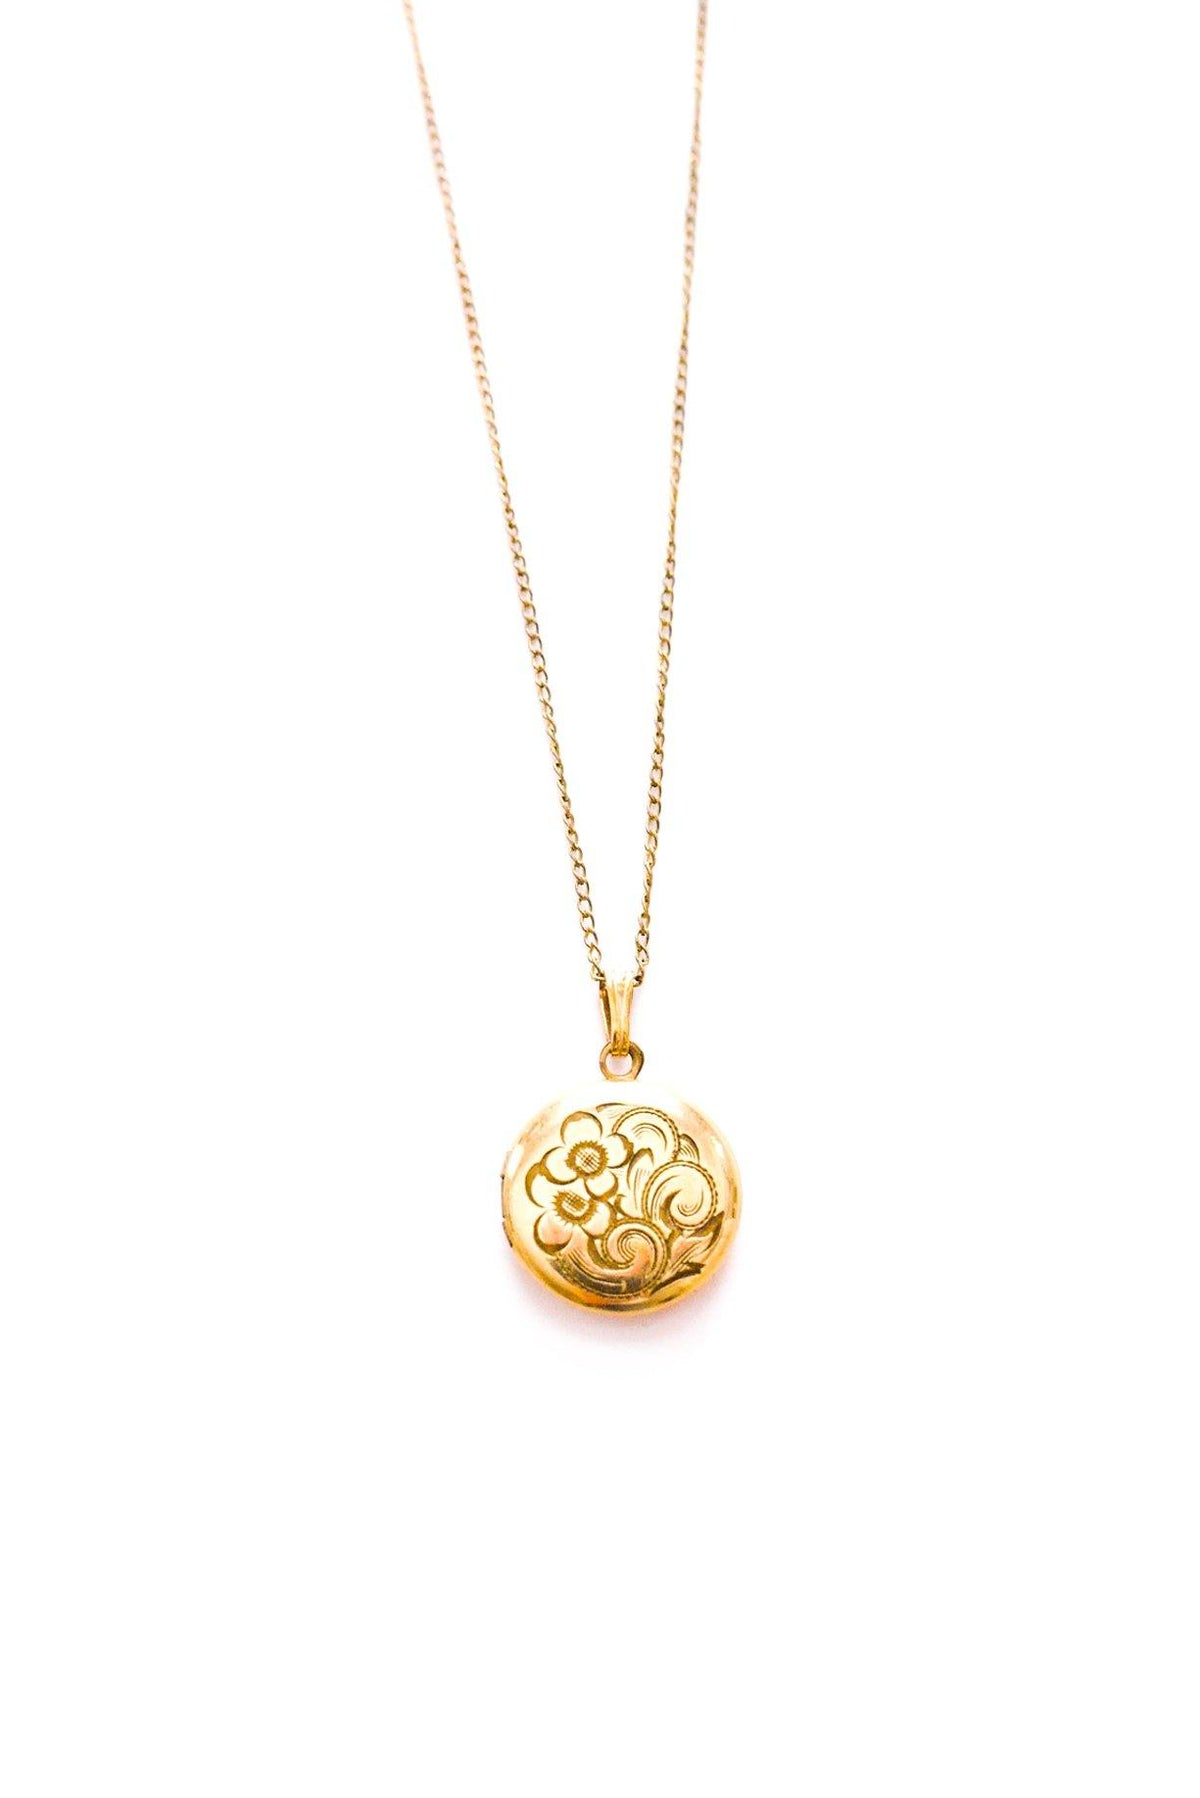 Vintage gold filled floral locket necklace from Sweet & Spark.